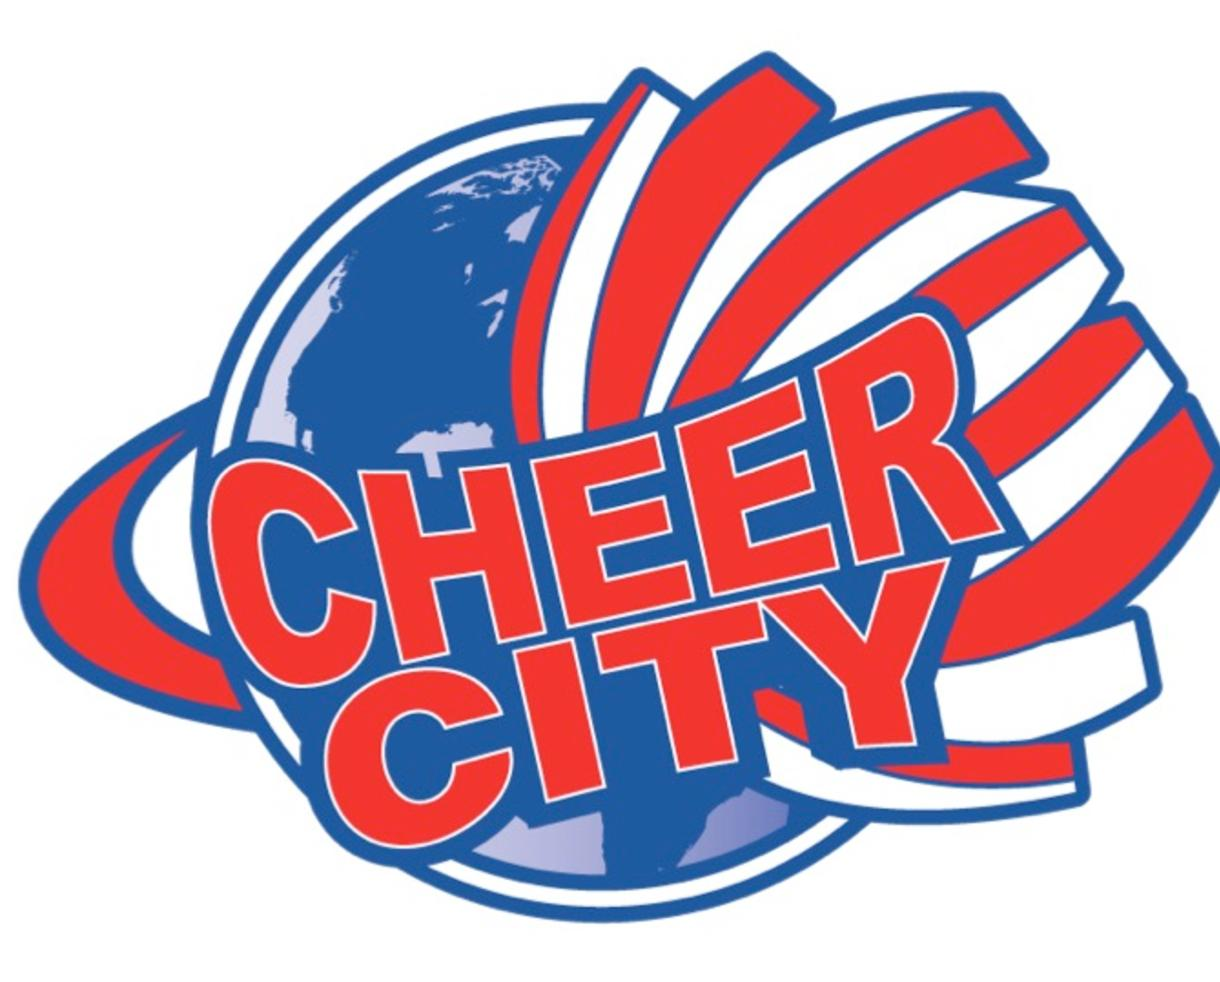 $99 for Cheer Camp with Cheer City for Ages 6-14 at nZone - Chantilly (44% Off - $175 Value)